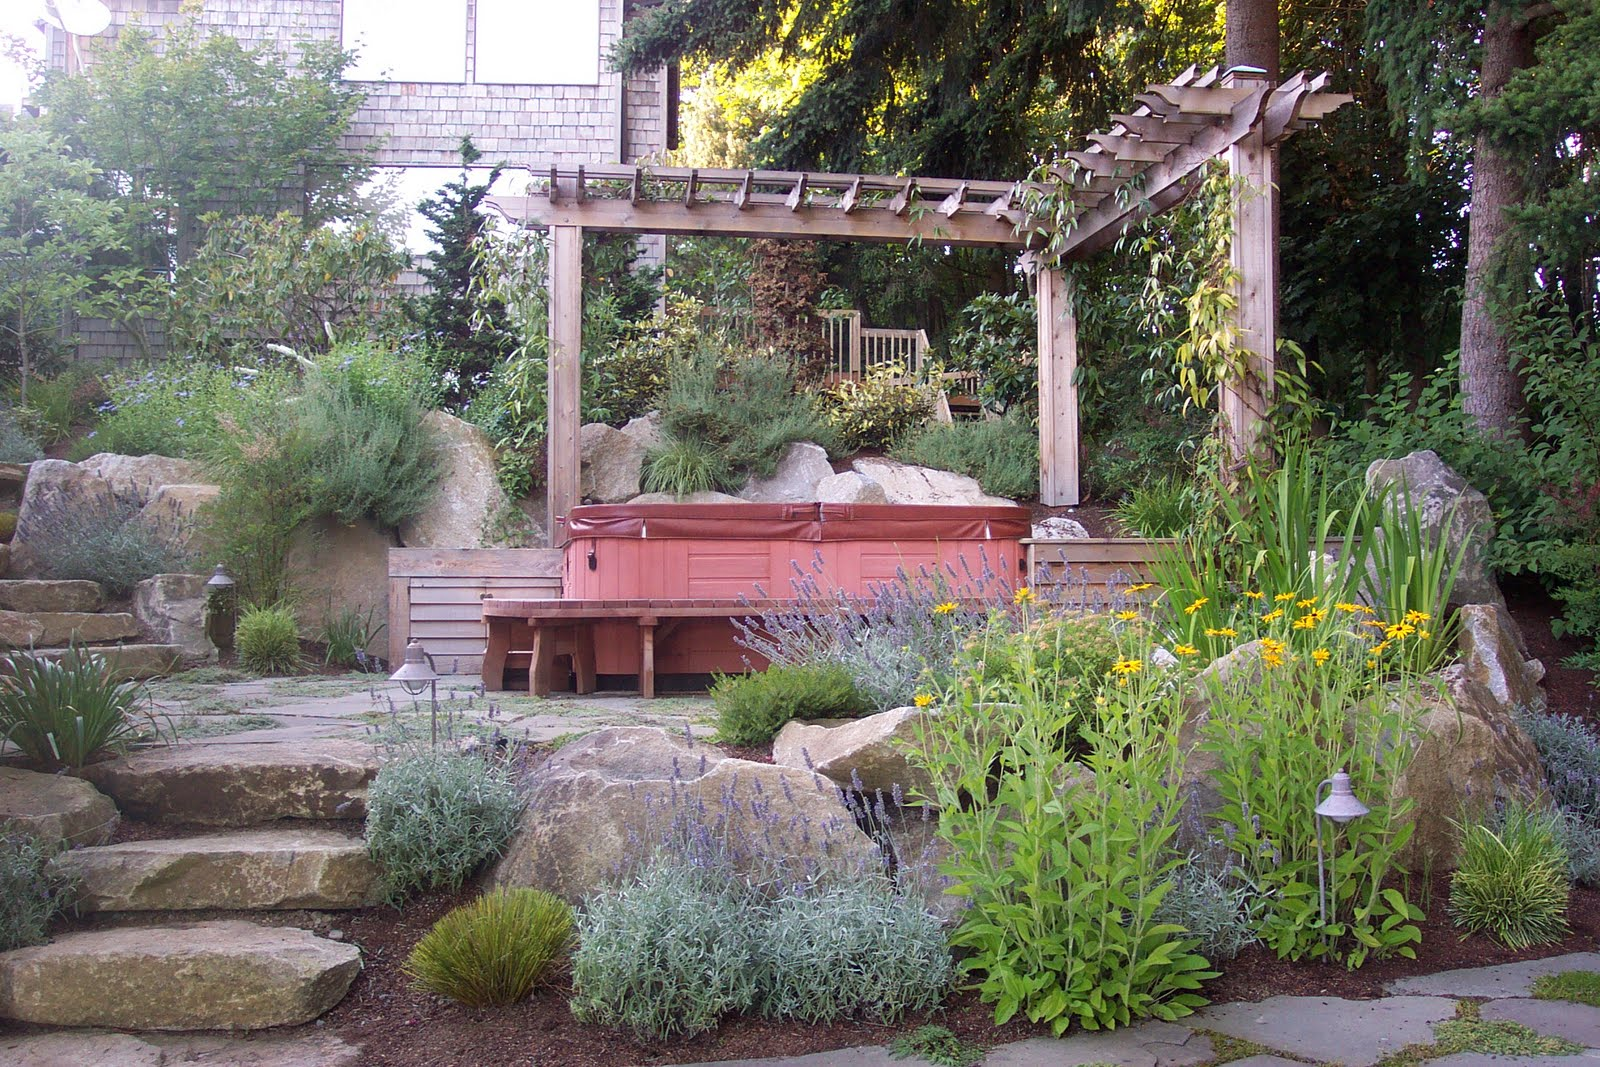 Privacy gardens designed by Environmental Construction Inc. in Kirkland WA